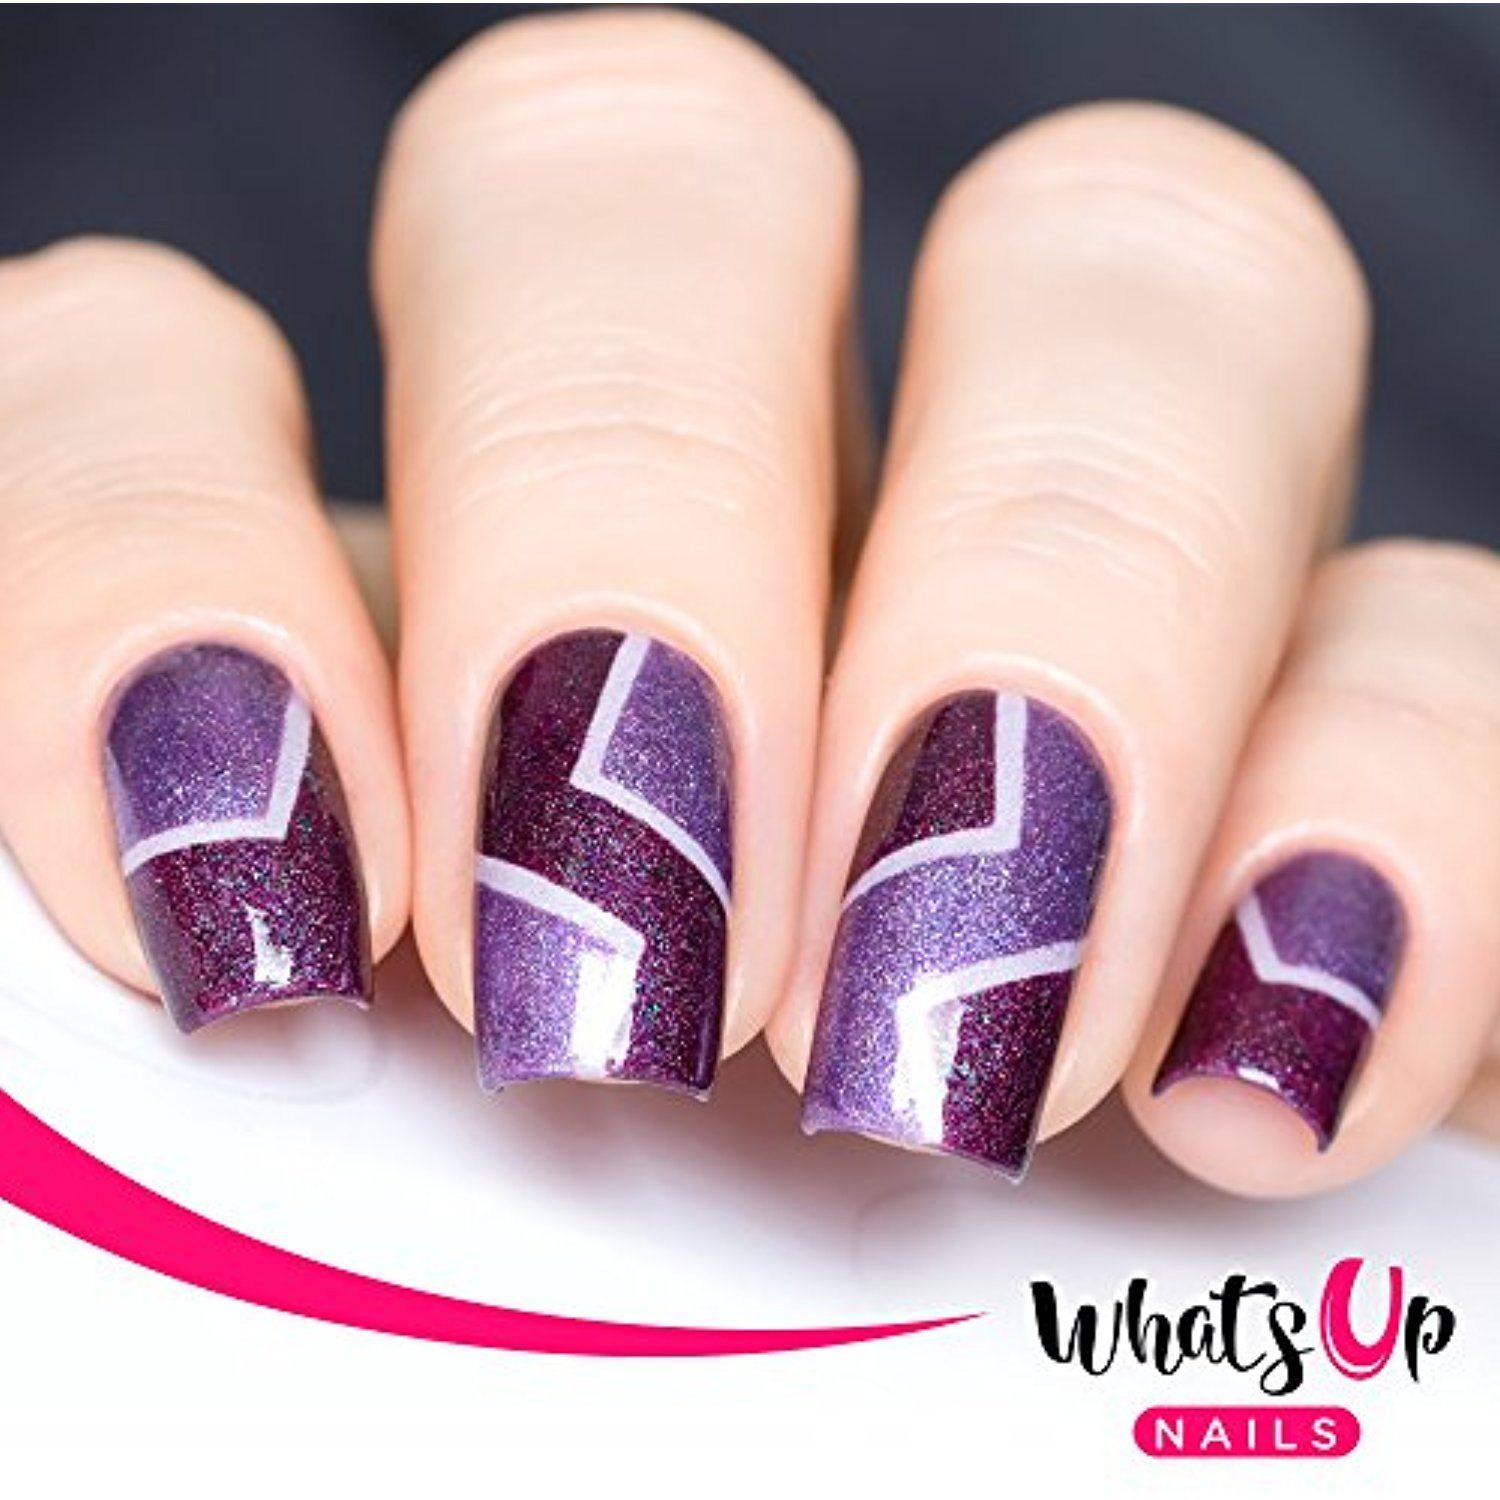 Whats Up Nails - Skinny Chevron Tape Nail Stencils Stickers Vinyls ...